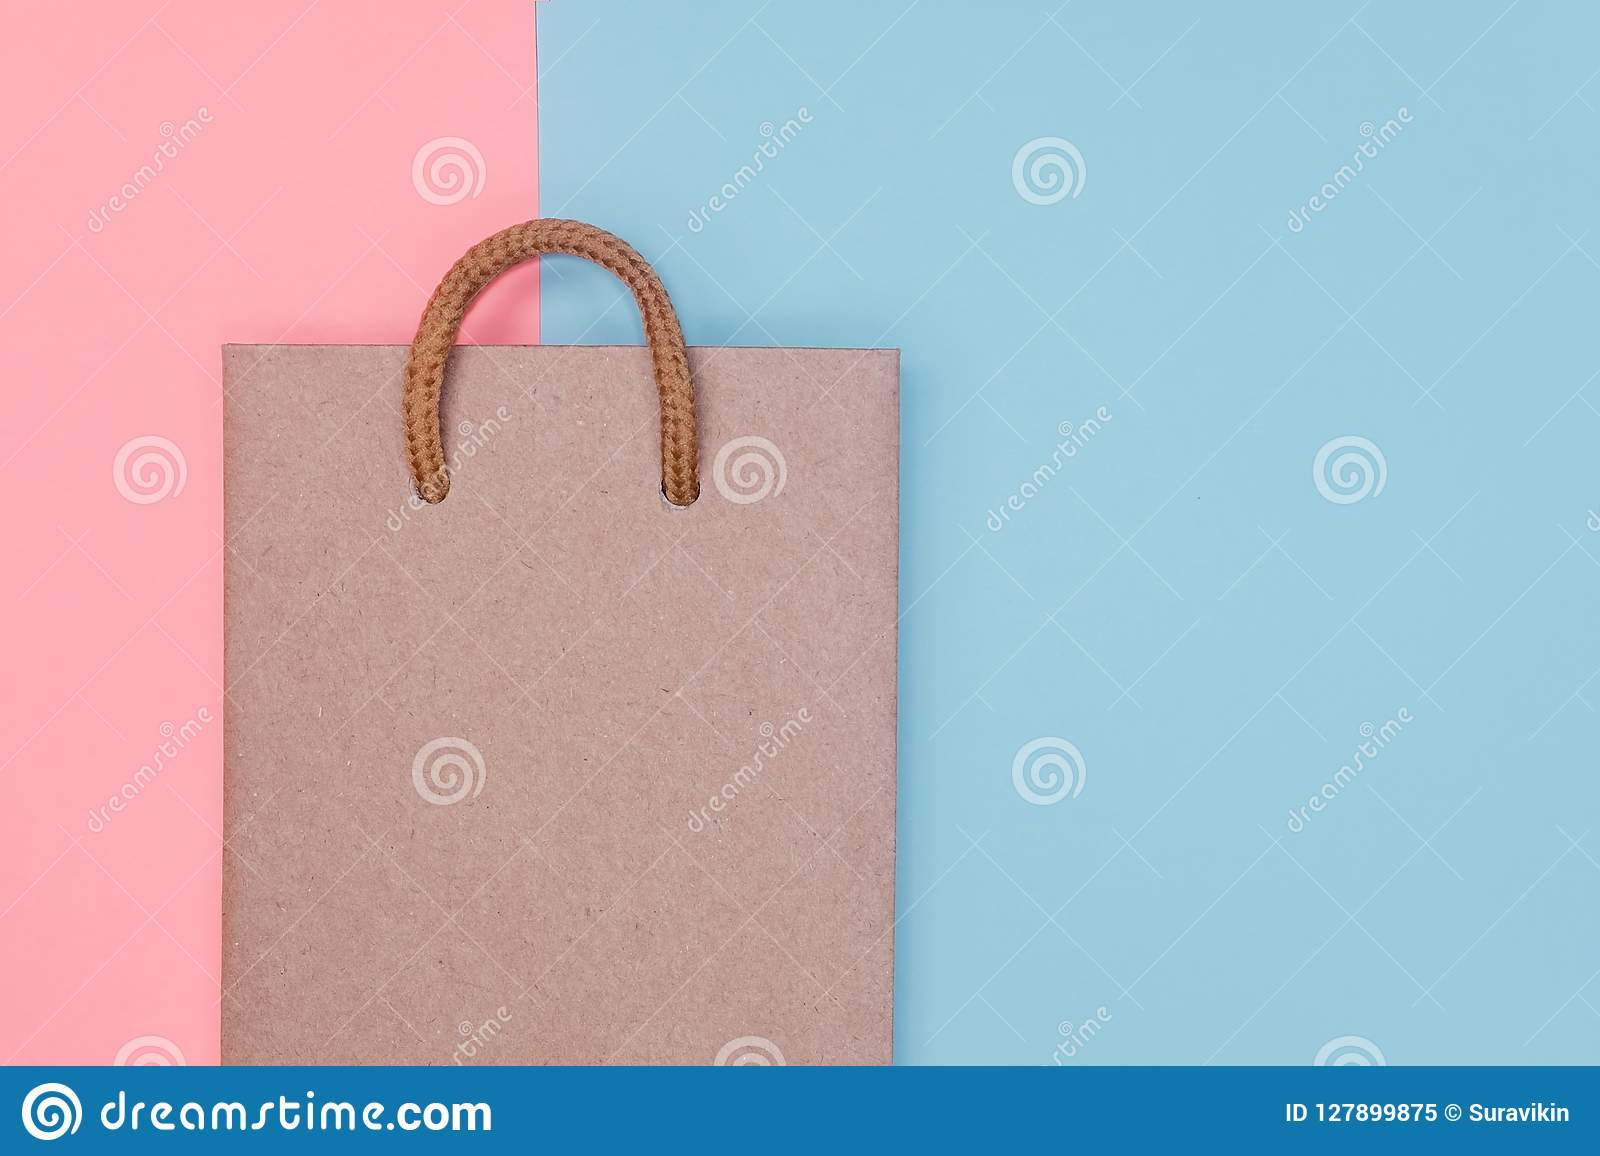 Craft Paper Shopping Bag On Paper Textured Backdrop Stock Image